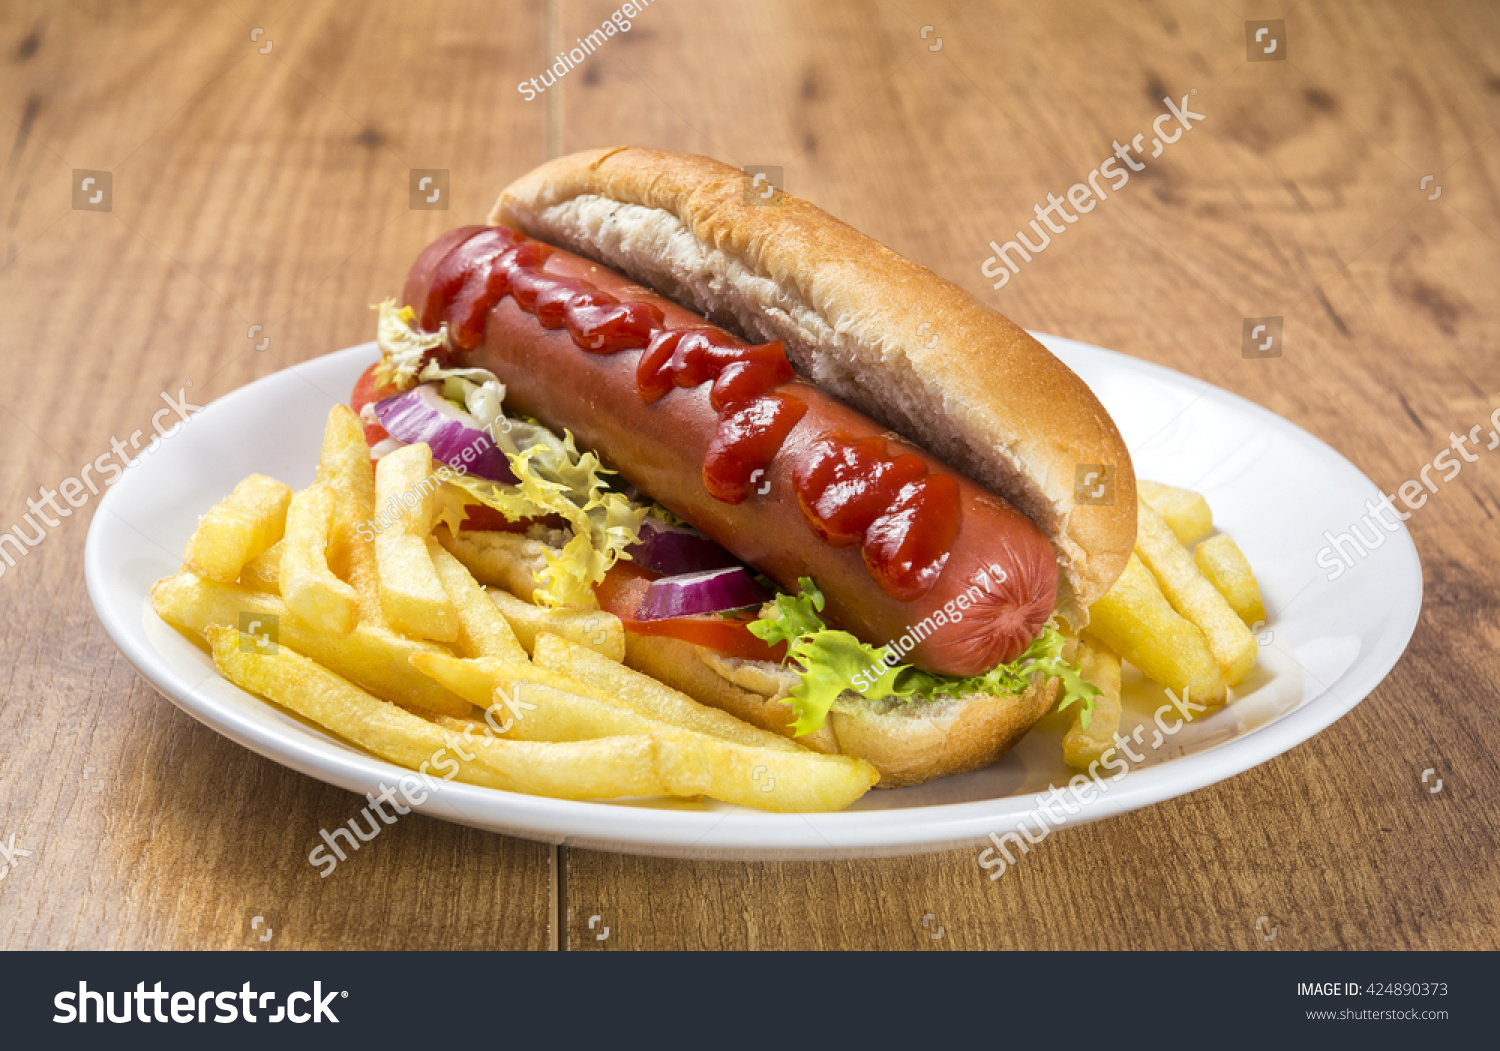 How To Hot Dog Become American Classic